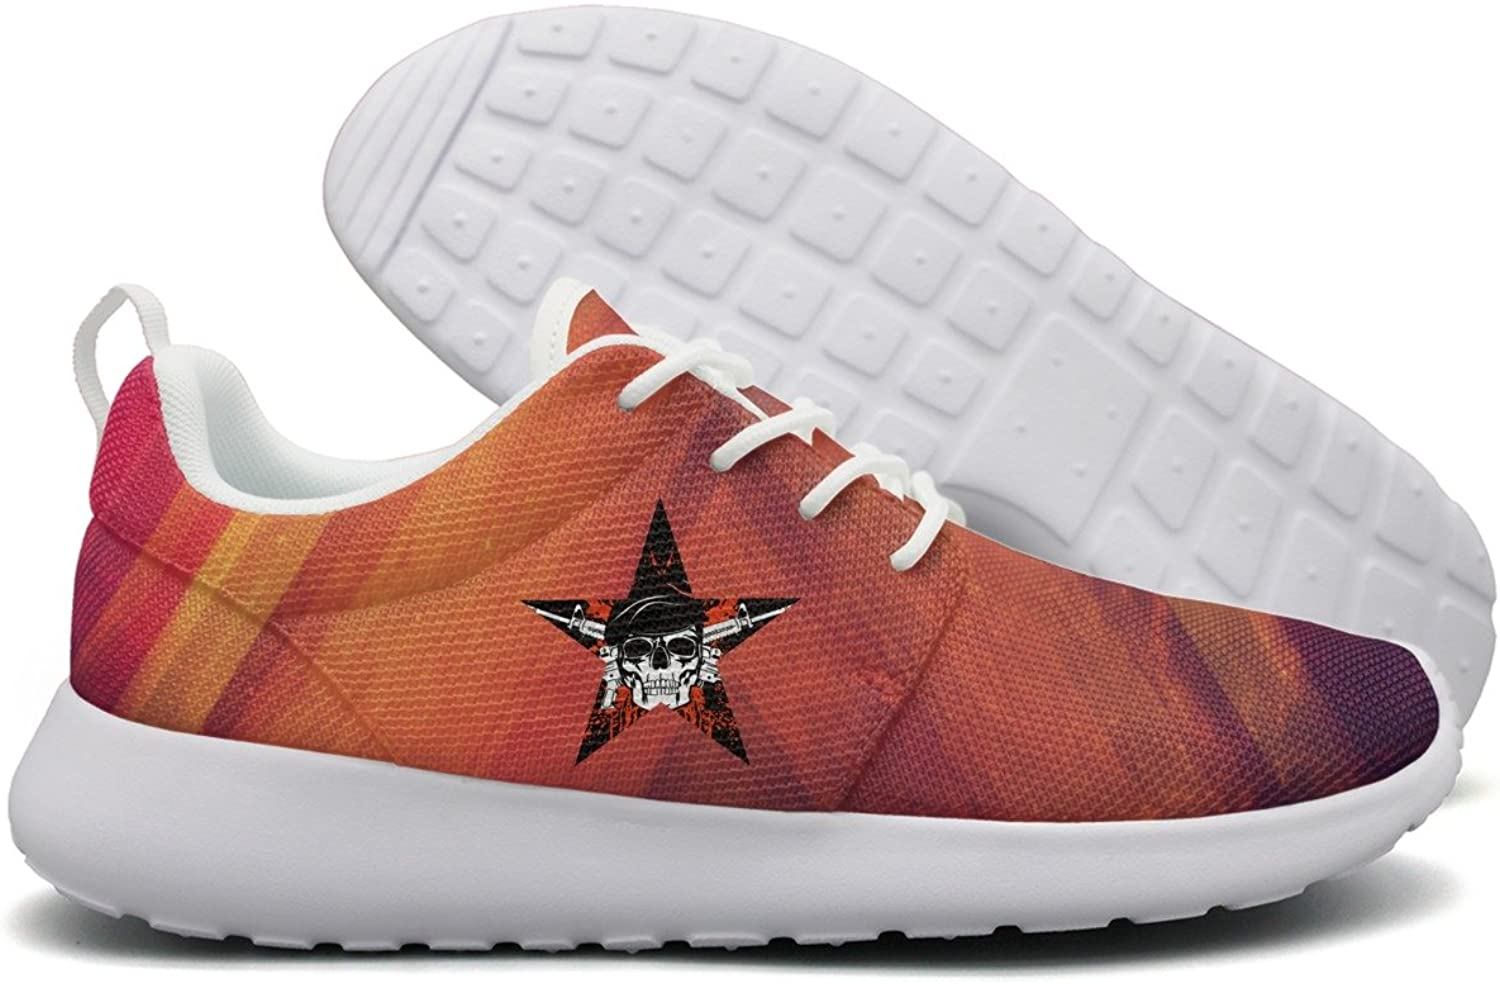 Skull In Beret With The Crossed Rifles Flex Mesh Lightweight shoes For Women